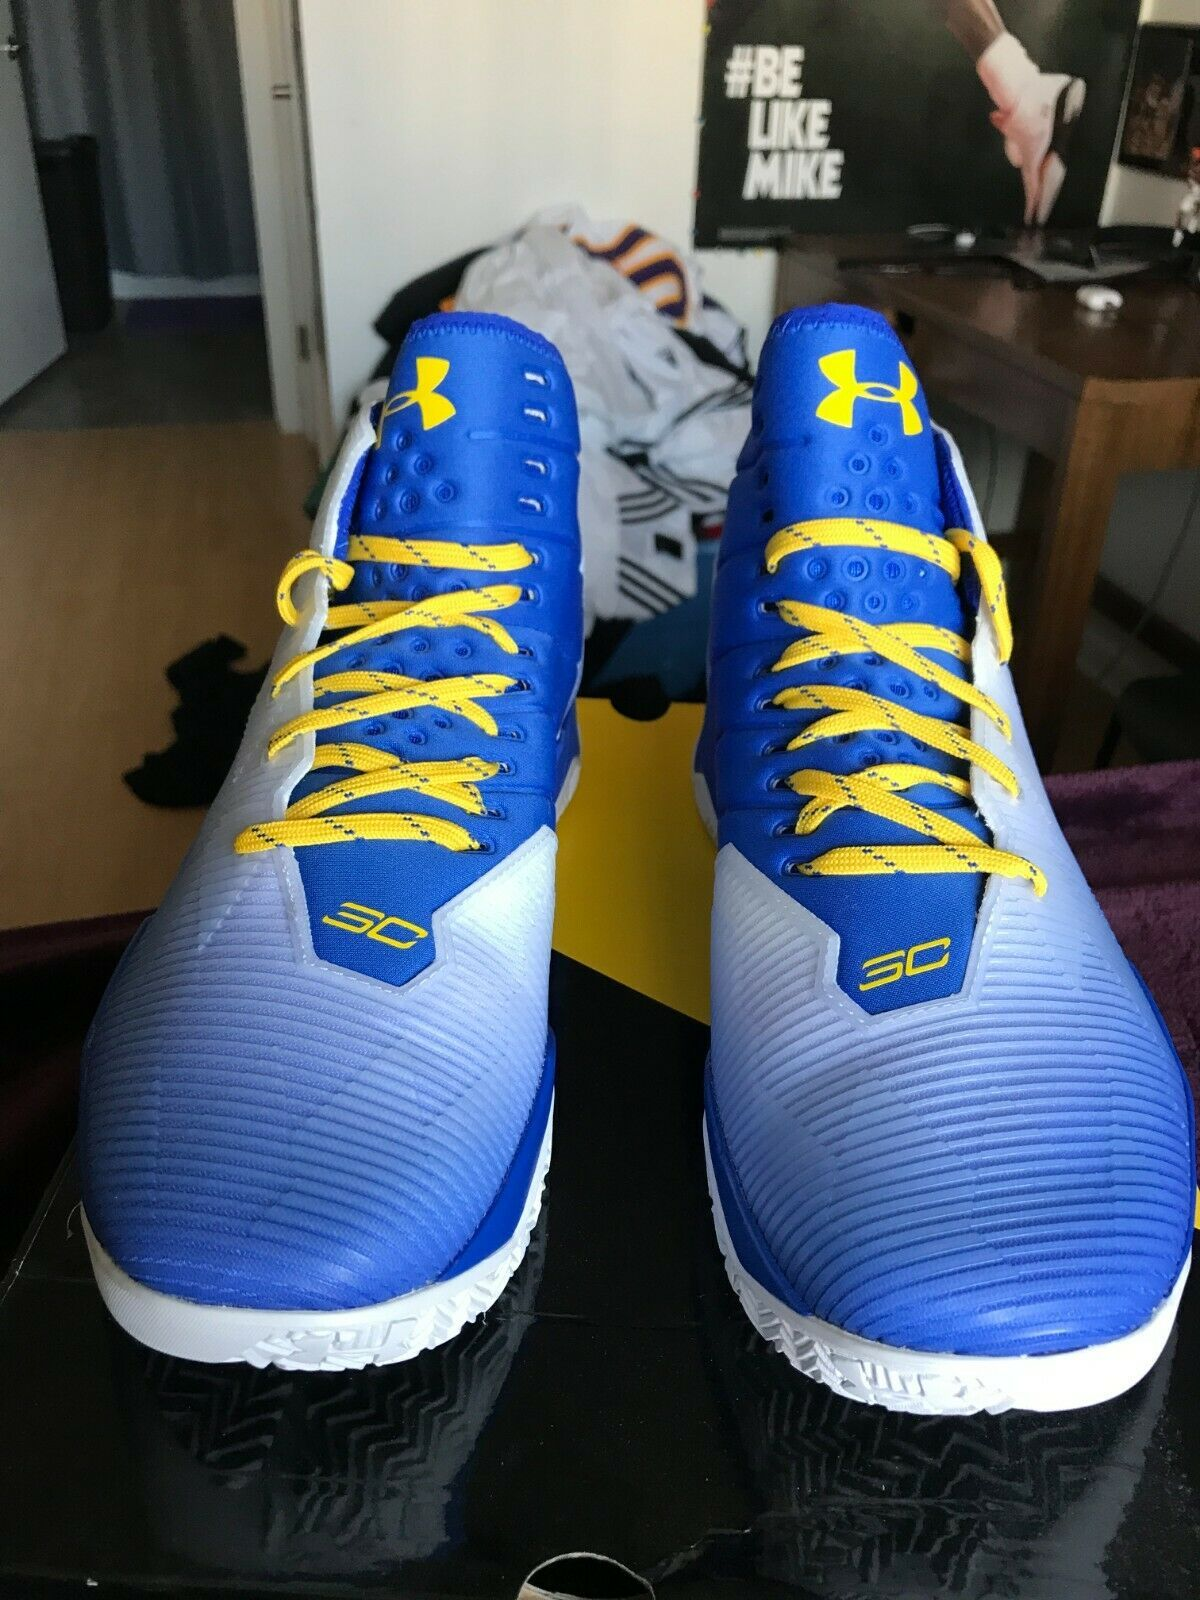 Under Armour Stephen Curry 2.5 73-9